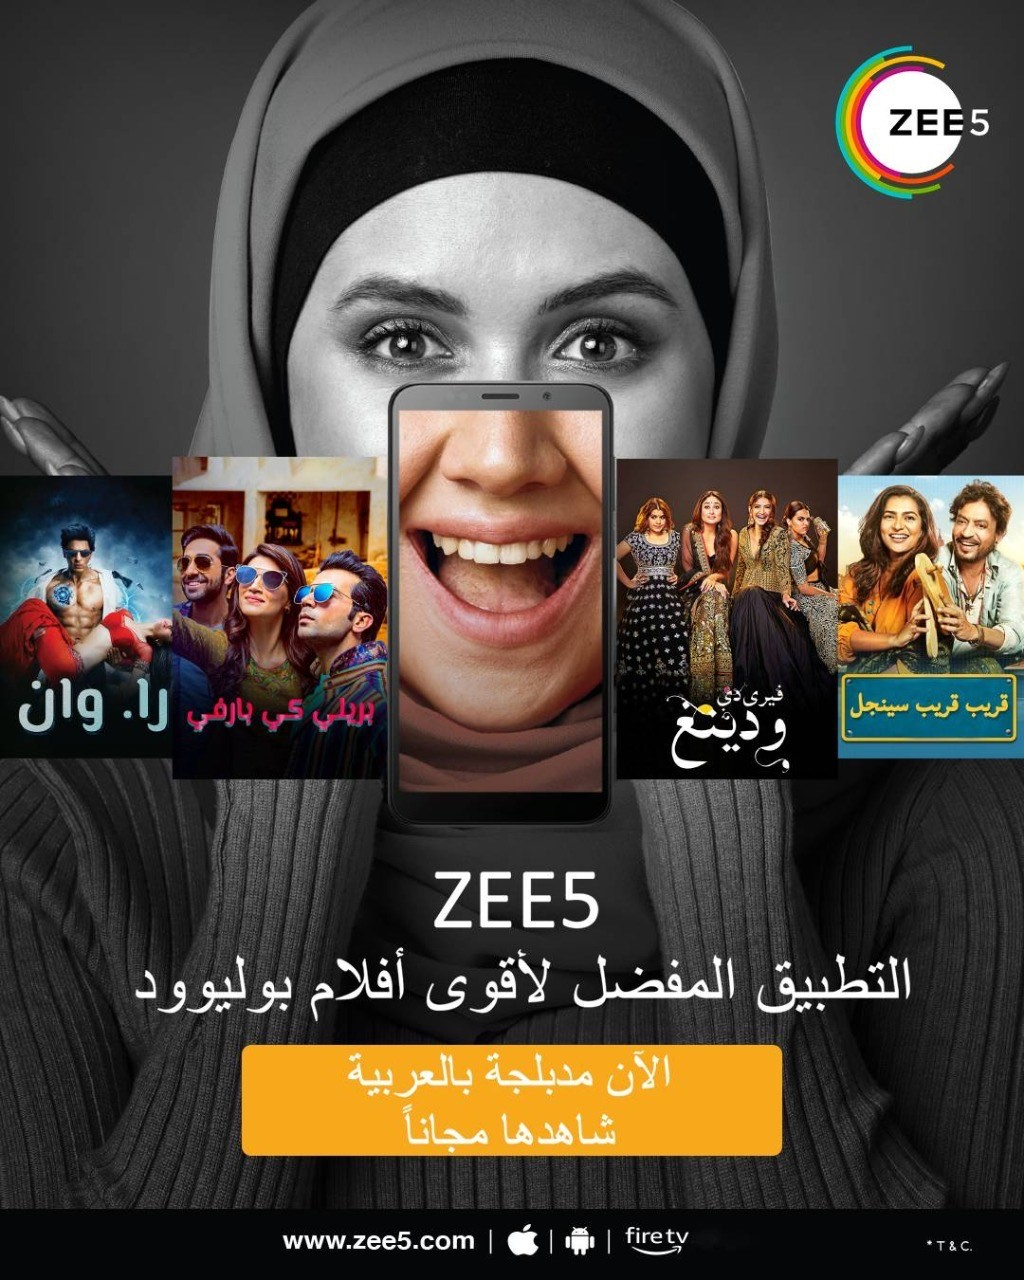 ZEE5 offers Bollywood movies in Arabic for free exclusively for its Middle East audiences